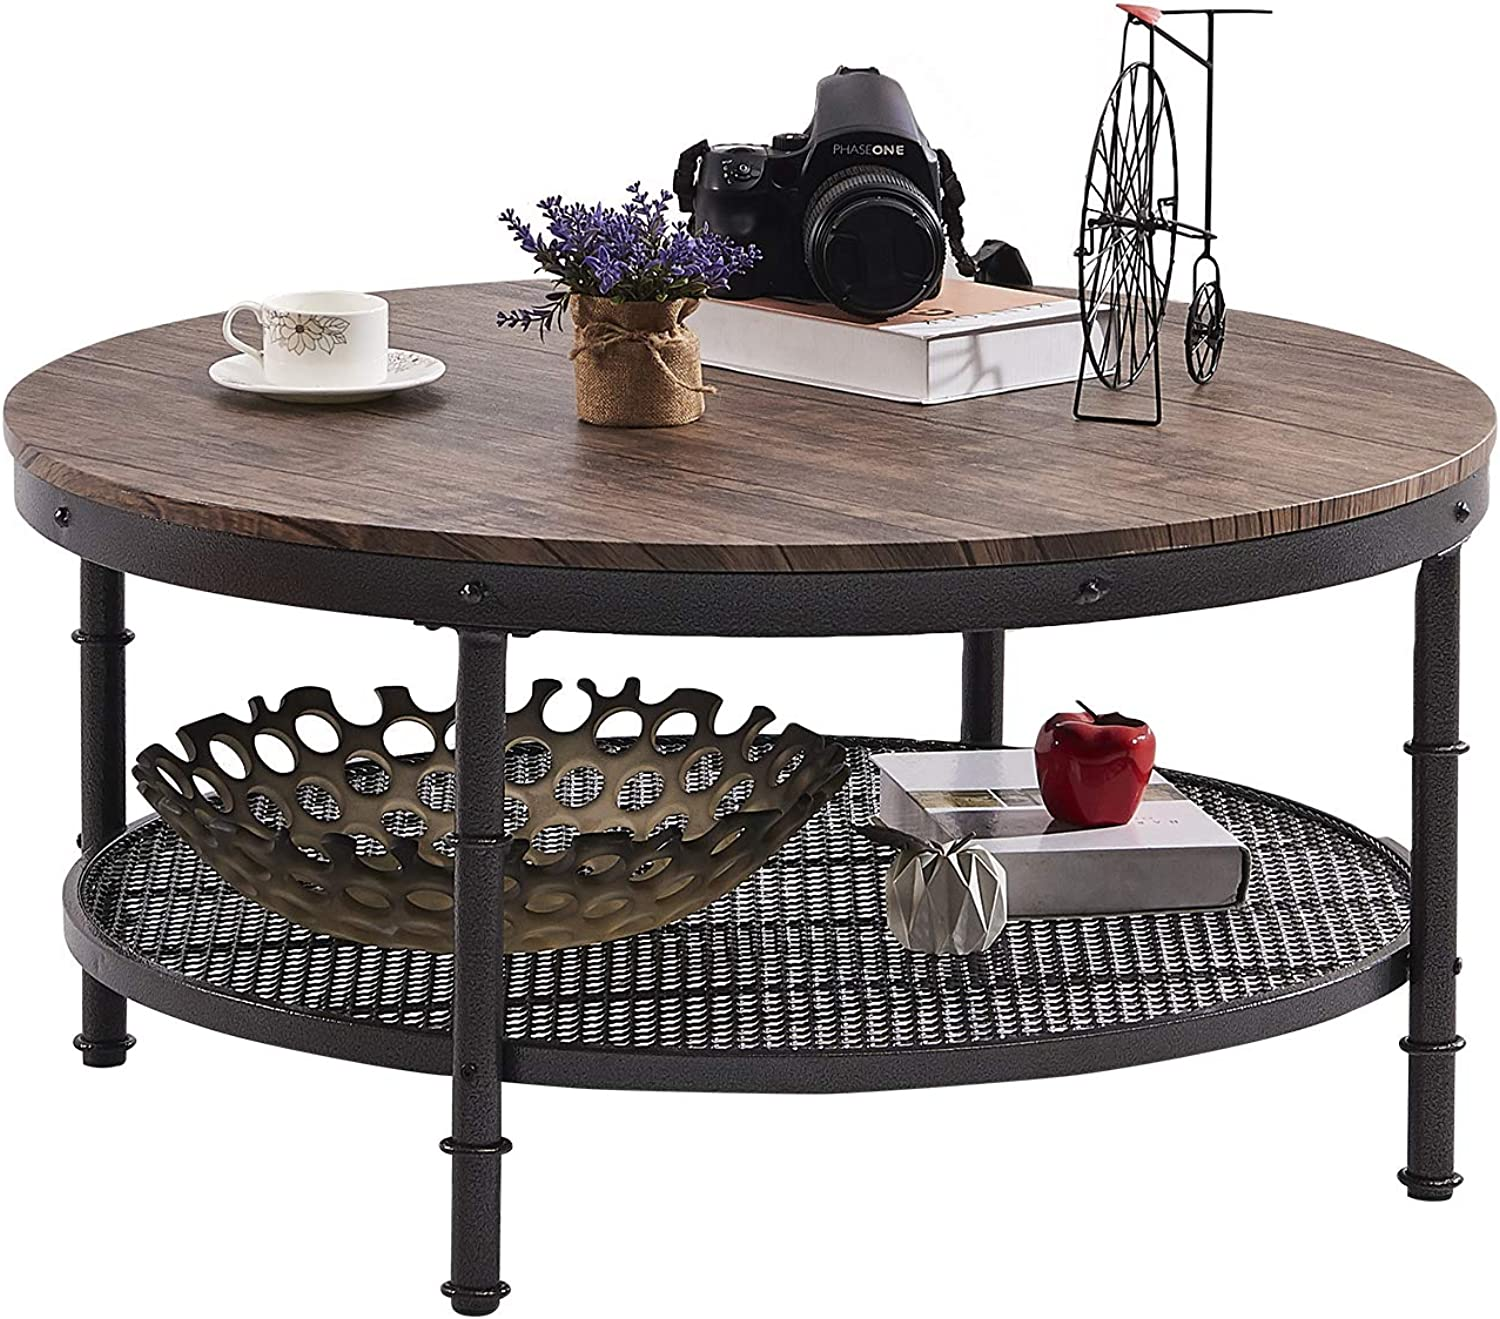 GreenForest – Coffee Table Round Wooden Design Metal Legs for Living Room, Rustic Walnut